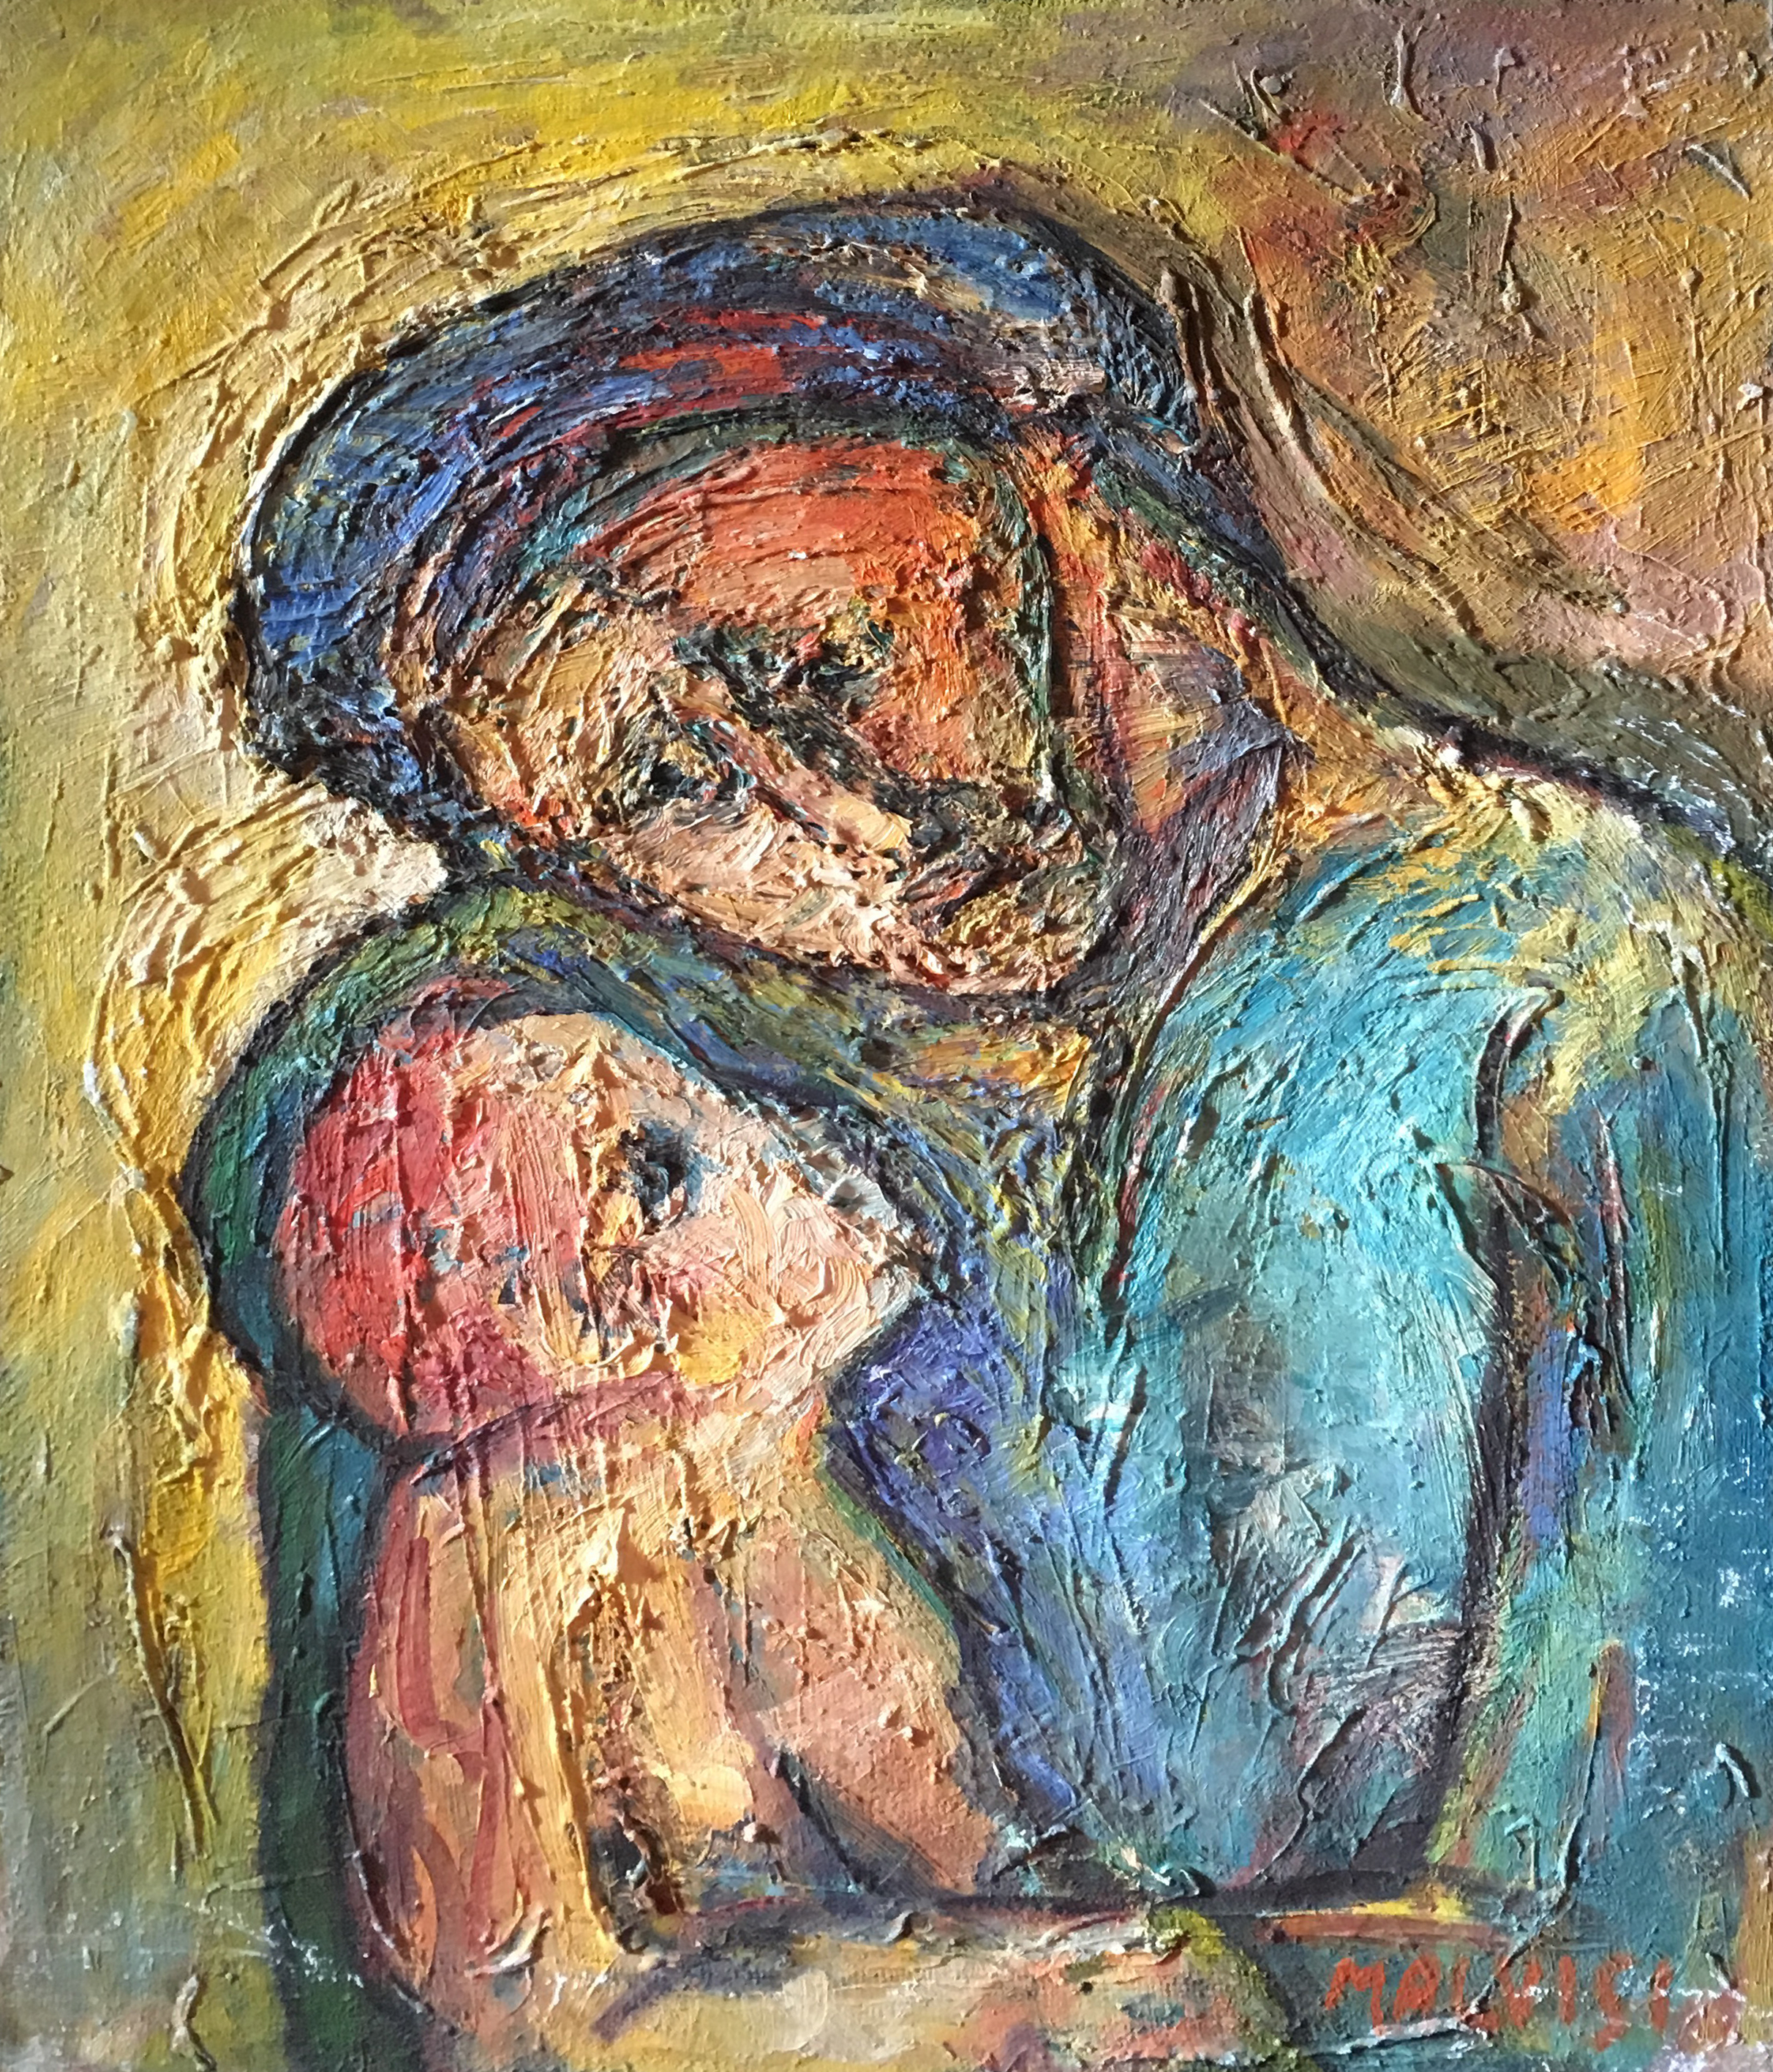 <b>Woman with child</b><br> (Orig.Donna con bambino) <br> 1978 Oil on canvas <br> cm 60 x 80